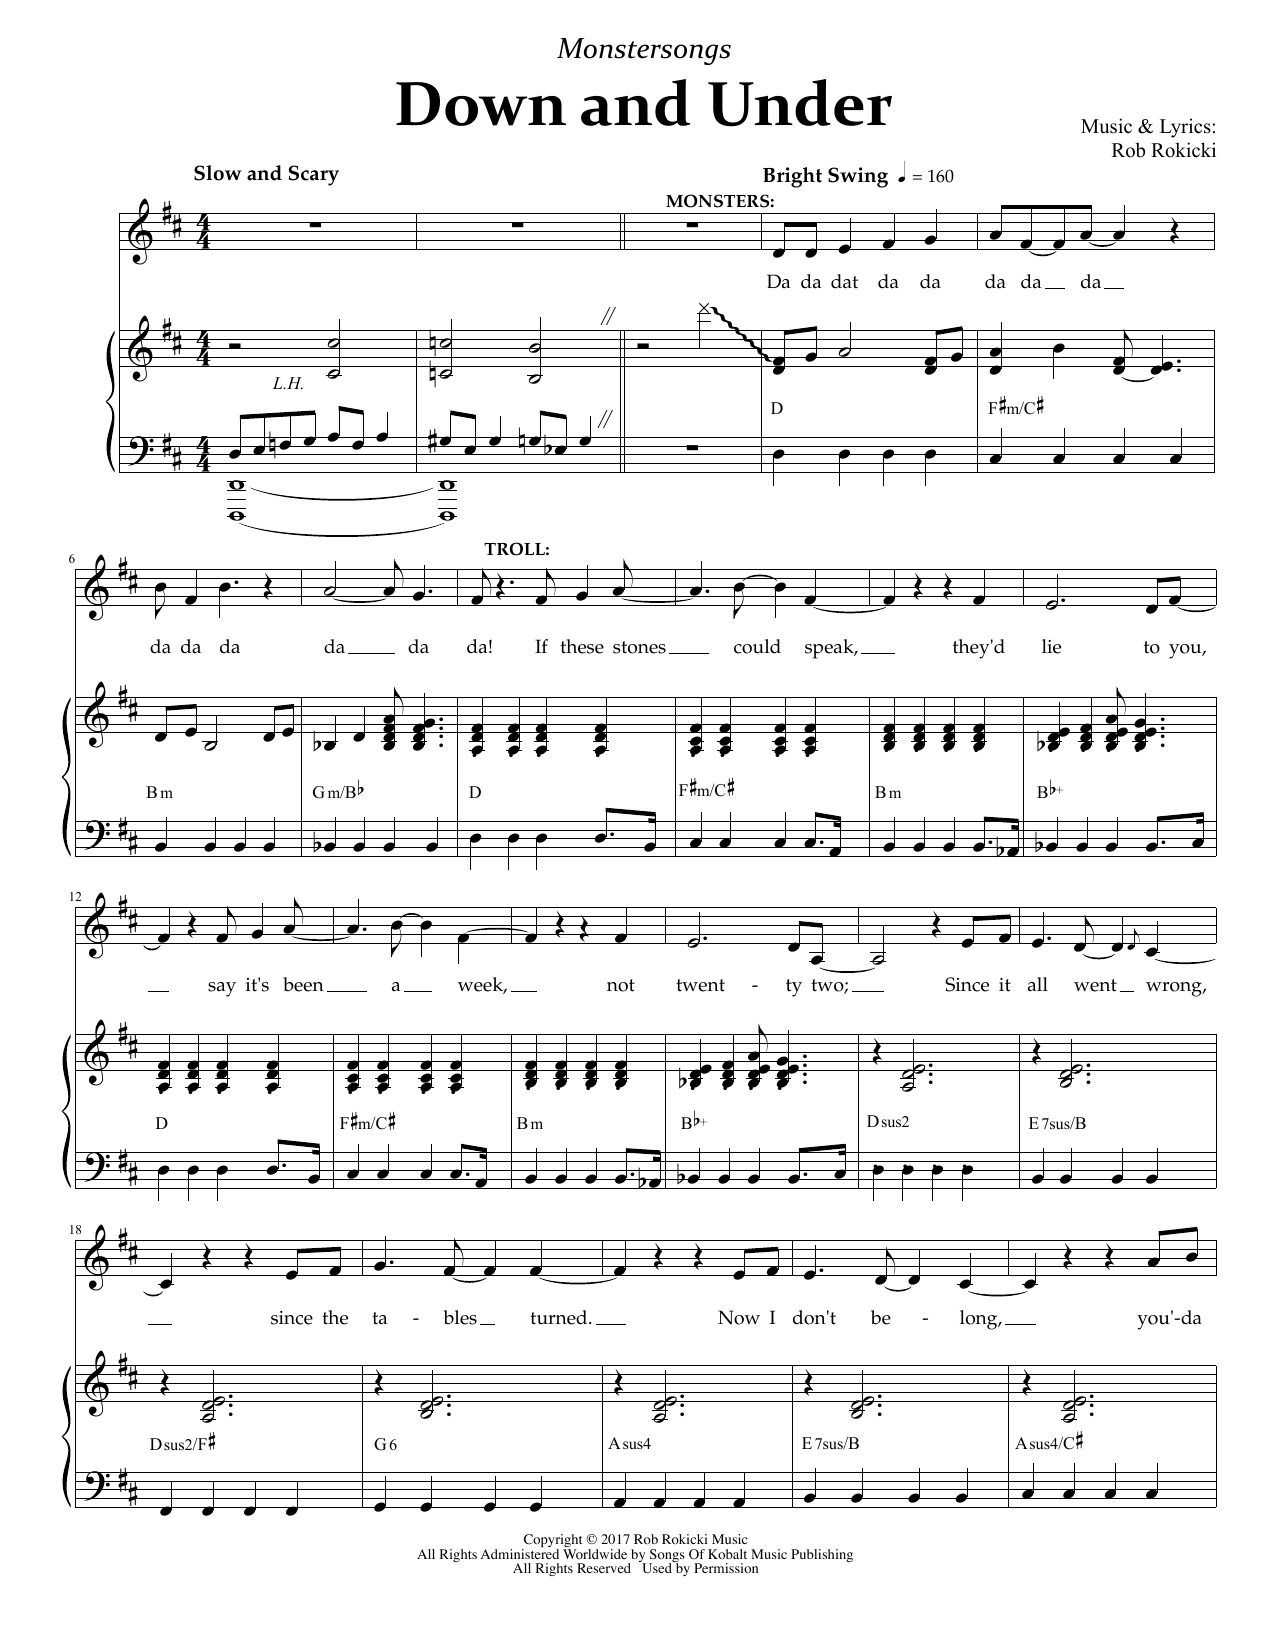 Down And Under (from Monstersongs) Sheet Music